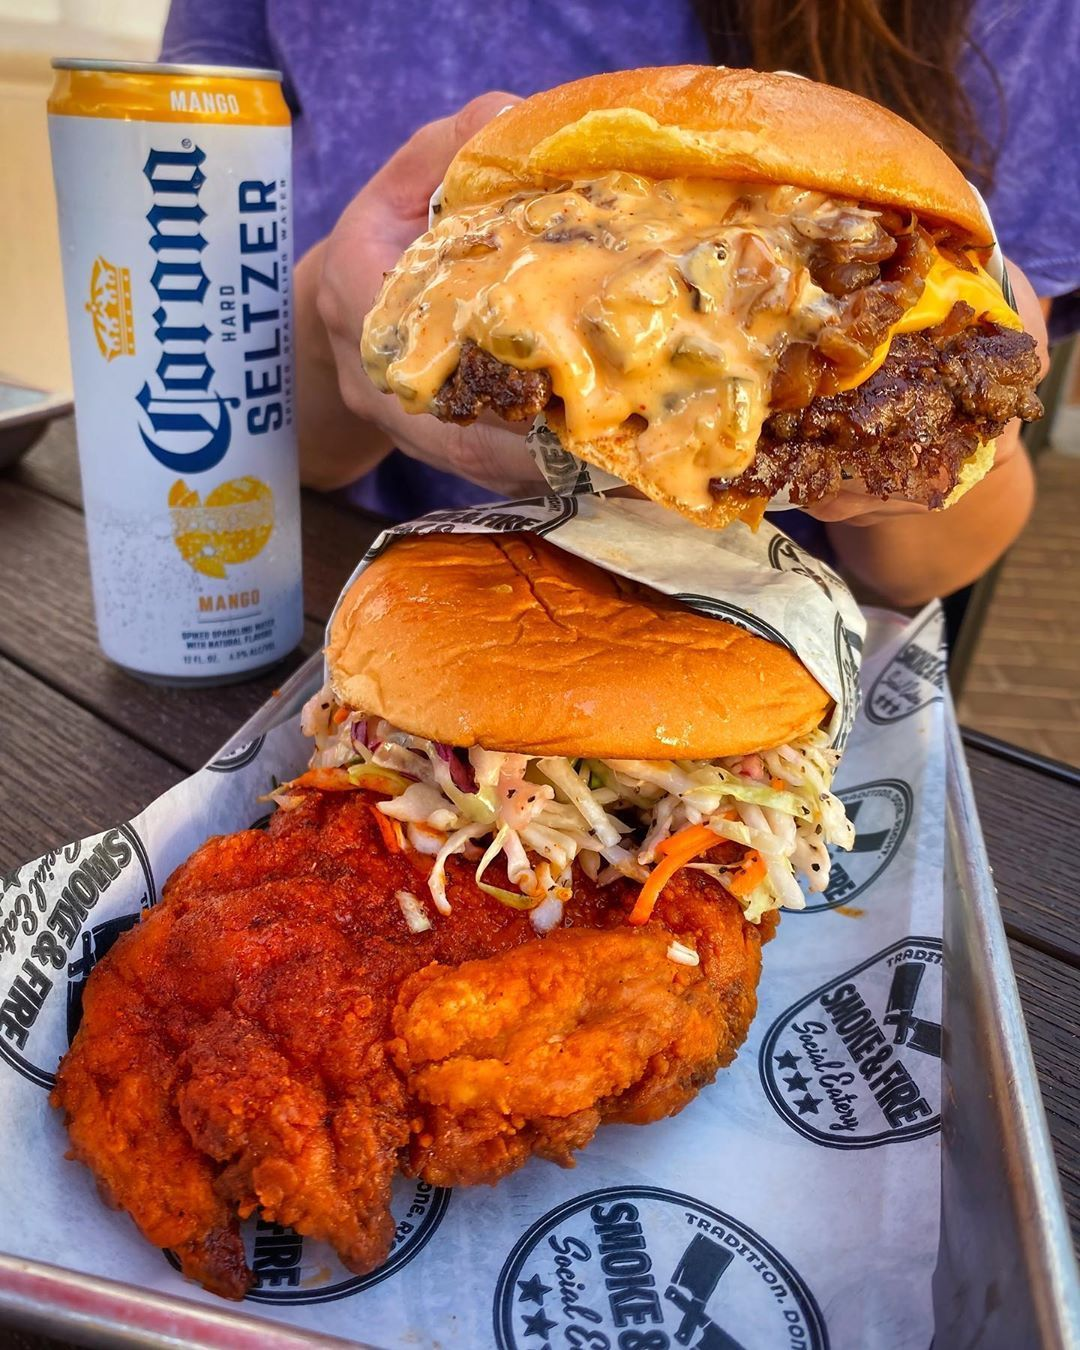 Smoke Fire Social Eatery On Instagram So What S The Order Going To Be This Week Order Online Or Dine In On Our Patio To Get Your Smokeandfire Fix Asap